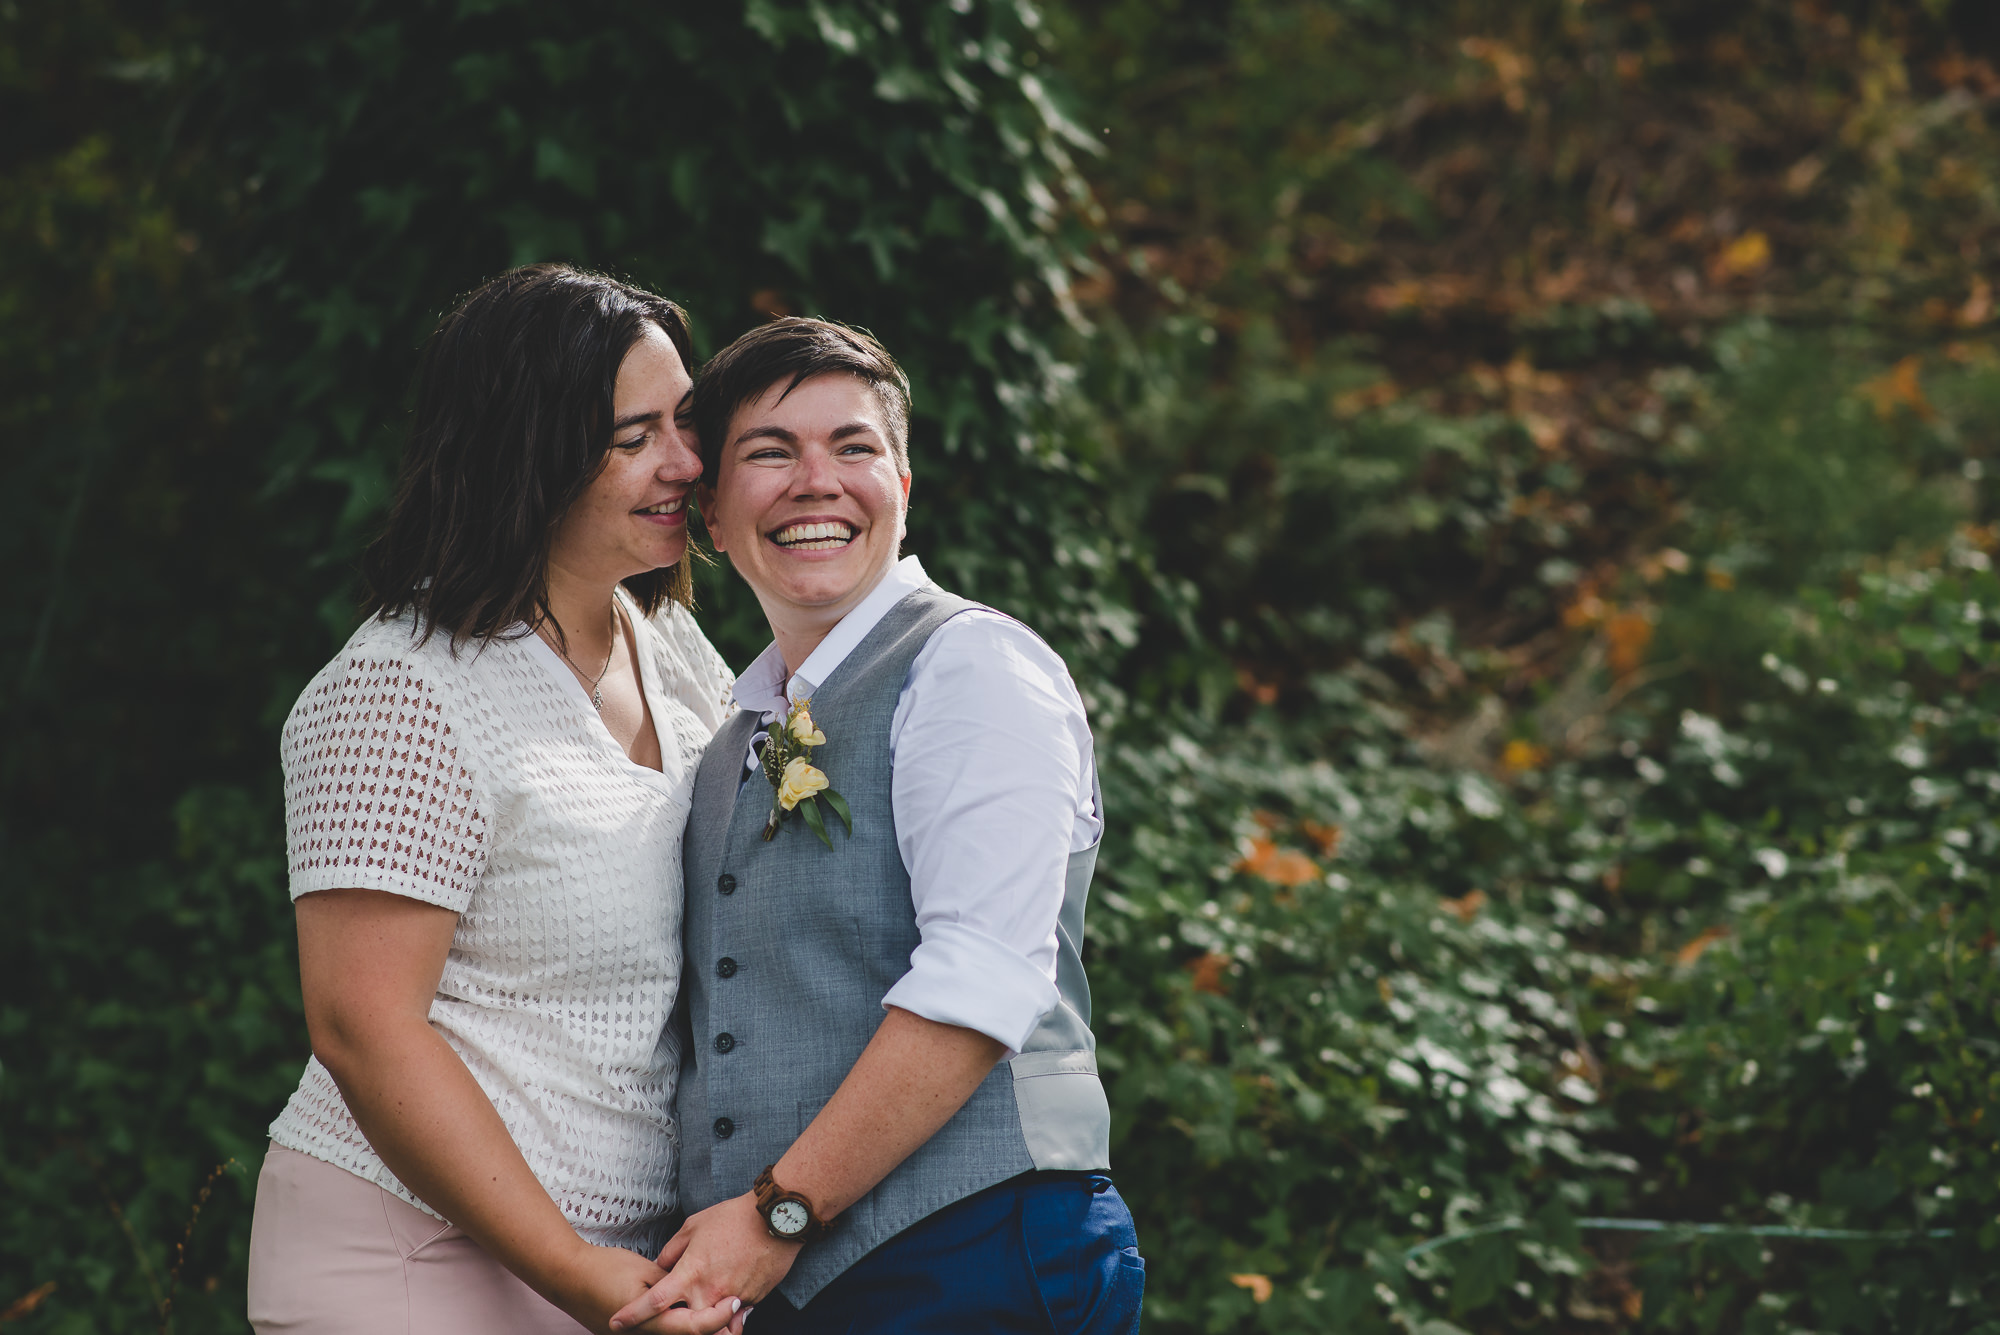 How to Pose LGBTQ Couples